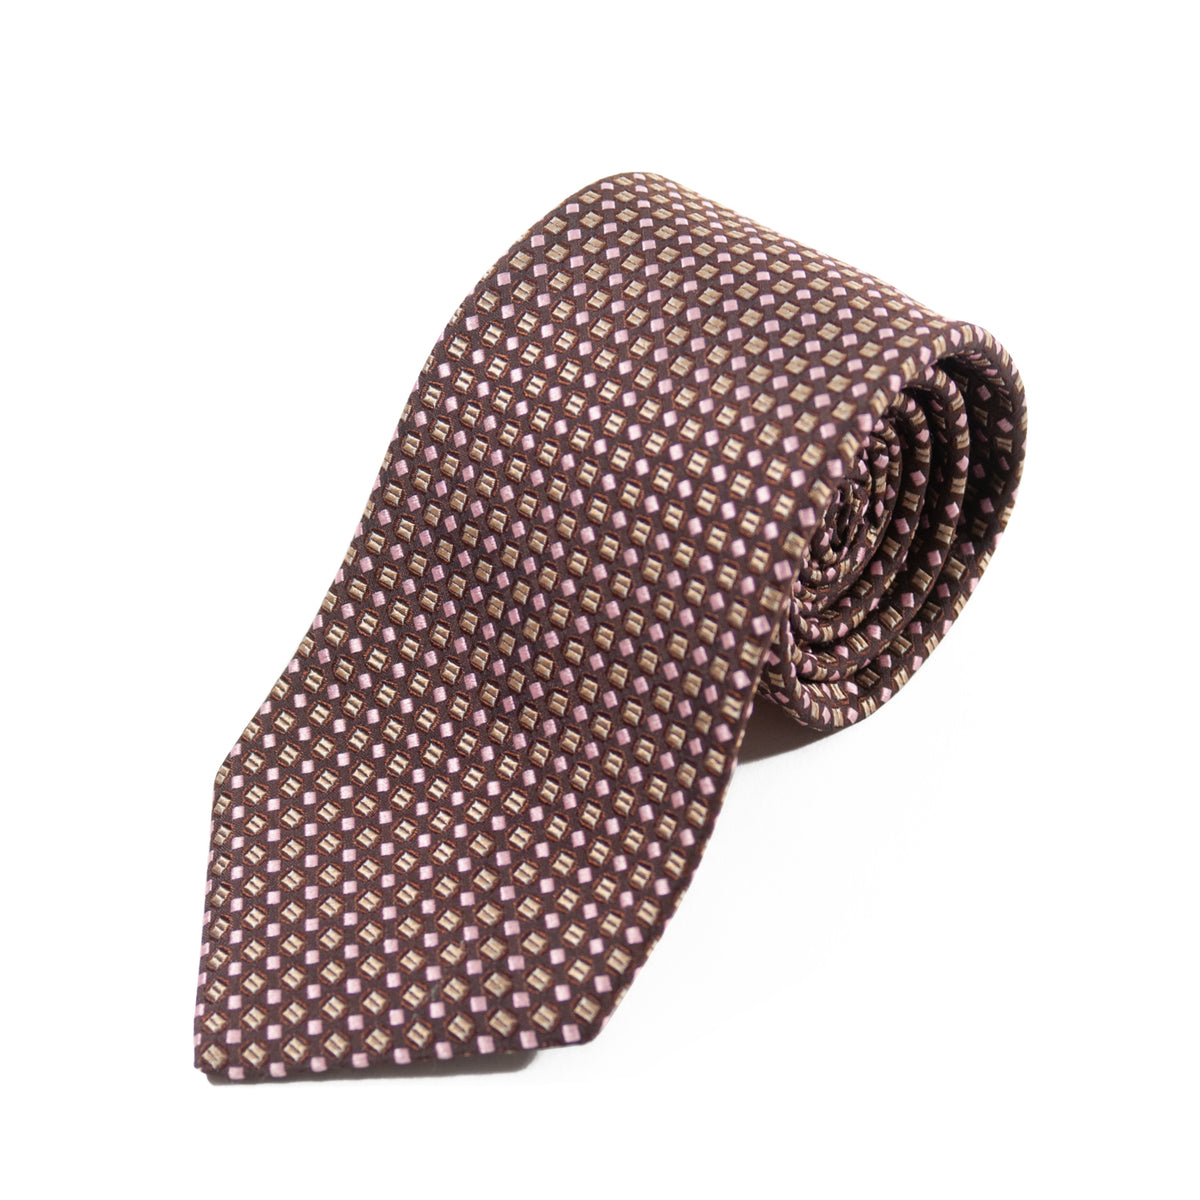 Hugo Boss Brown Geometric Patterned Tie for Luxmrkt.com Menswear Consignment Edmonton